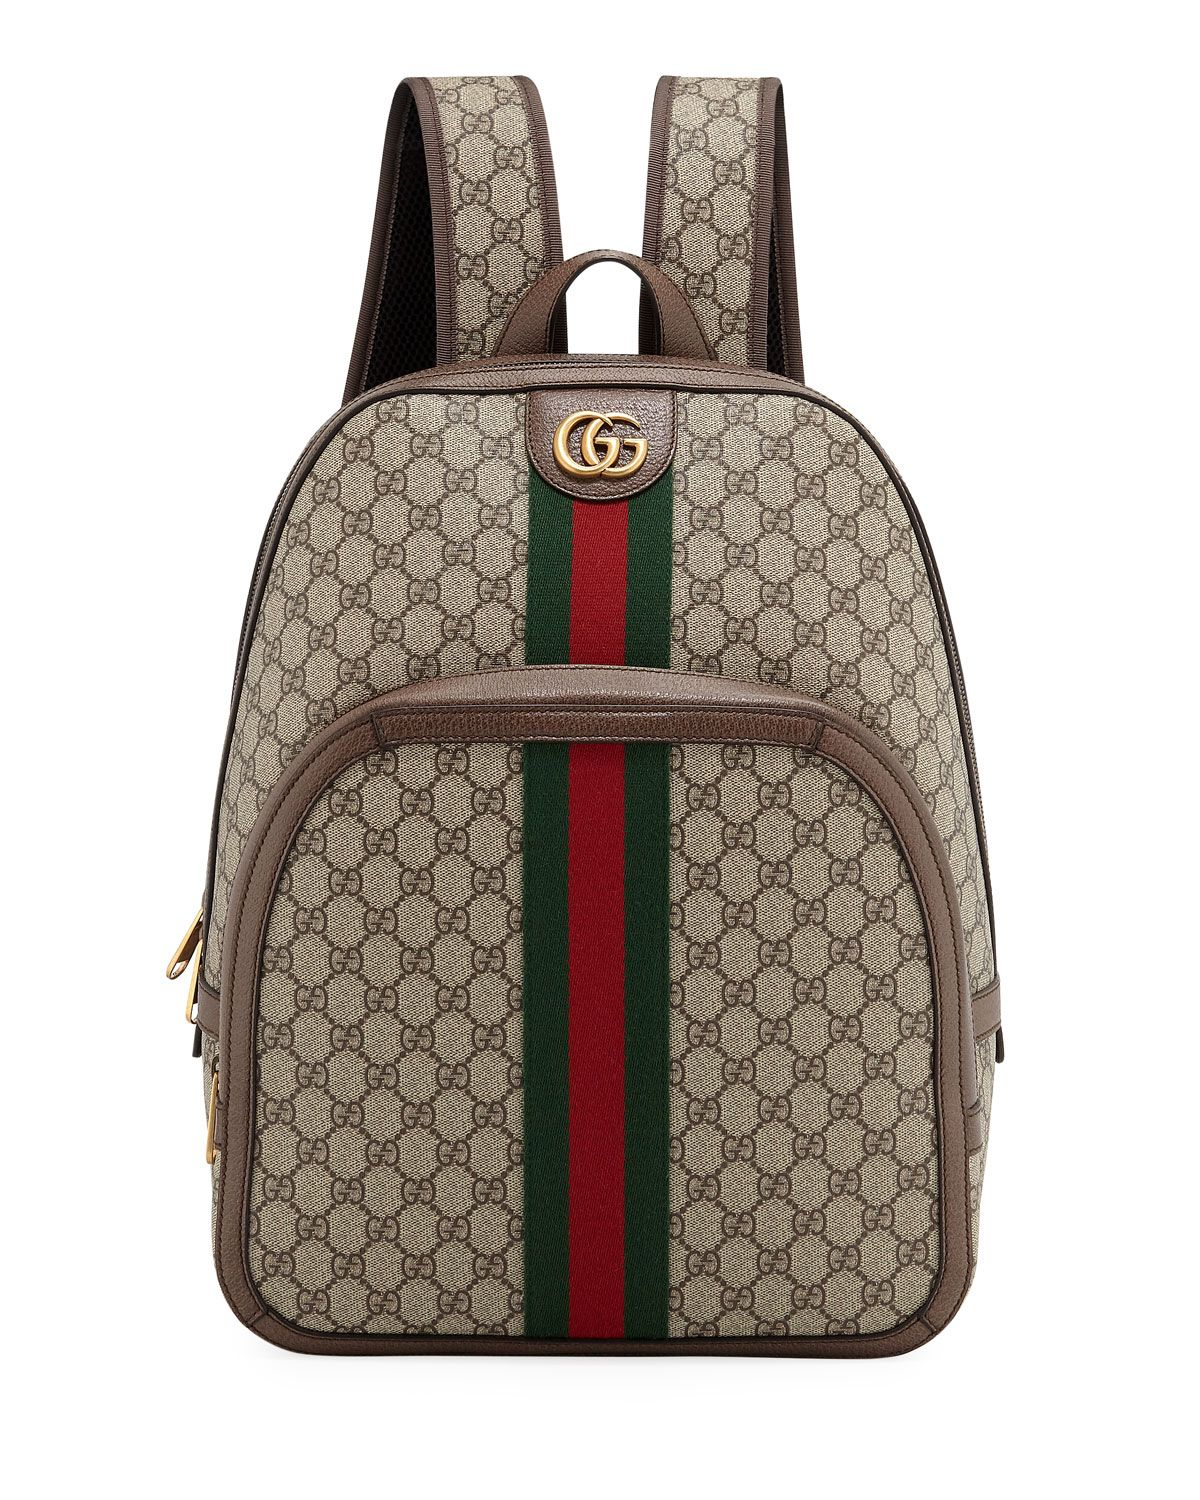 c74b5b58090 GUCCI MEN S GG SUPREME MEDIUM CANVAS BACKPACK.  gucci  bags  leather   canvas  backpacks